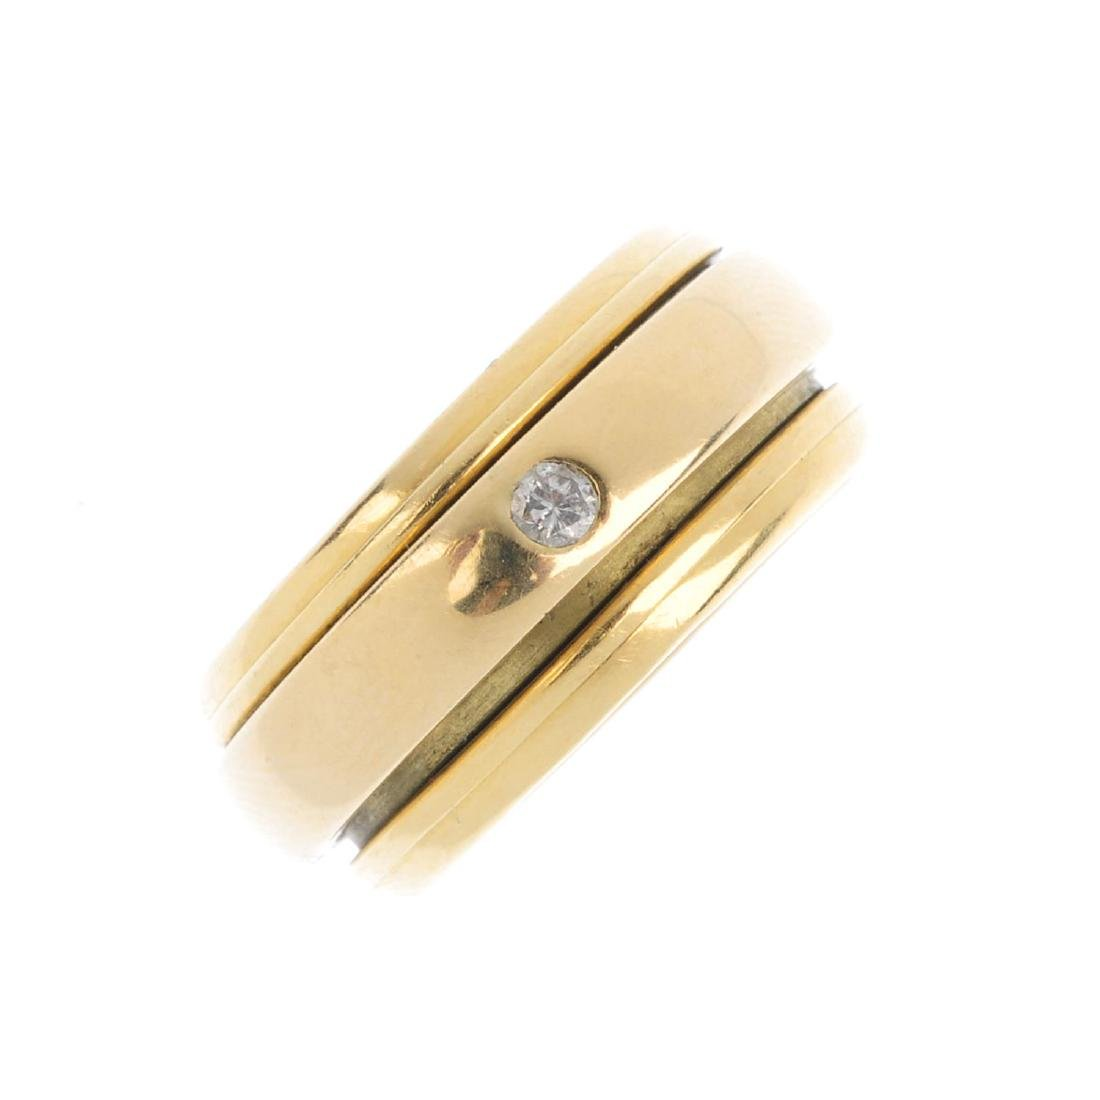 PIAGET - a diamond 'Possession' ring. Designed as a